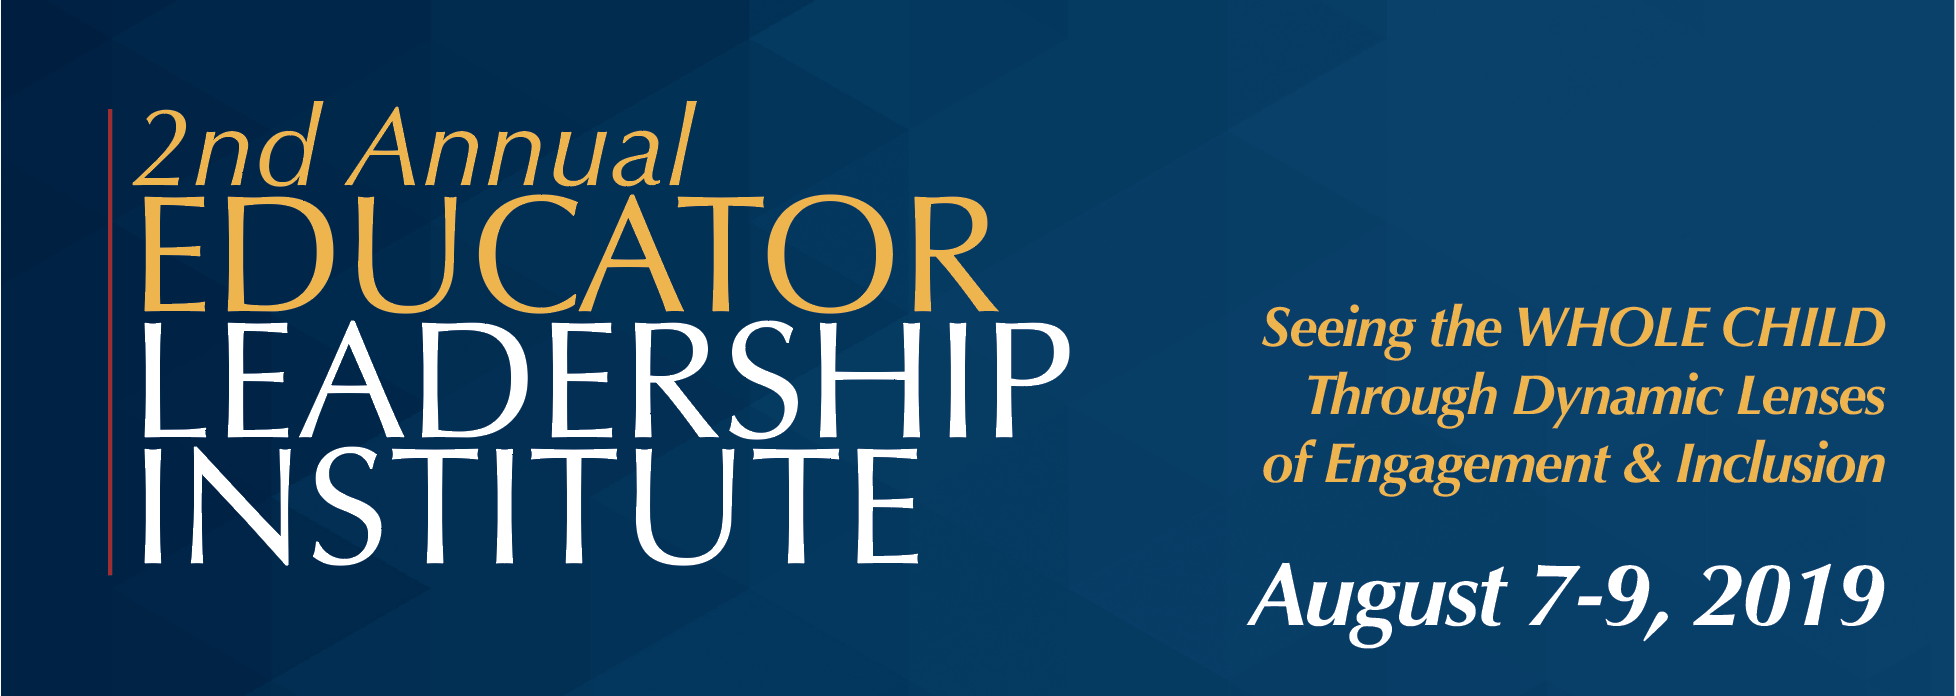 2019 Educational Leadership Institute Banner